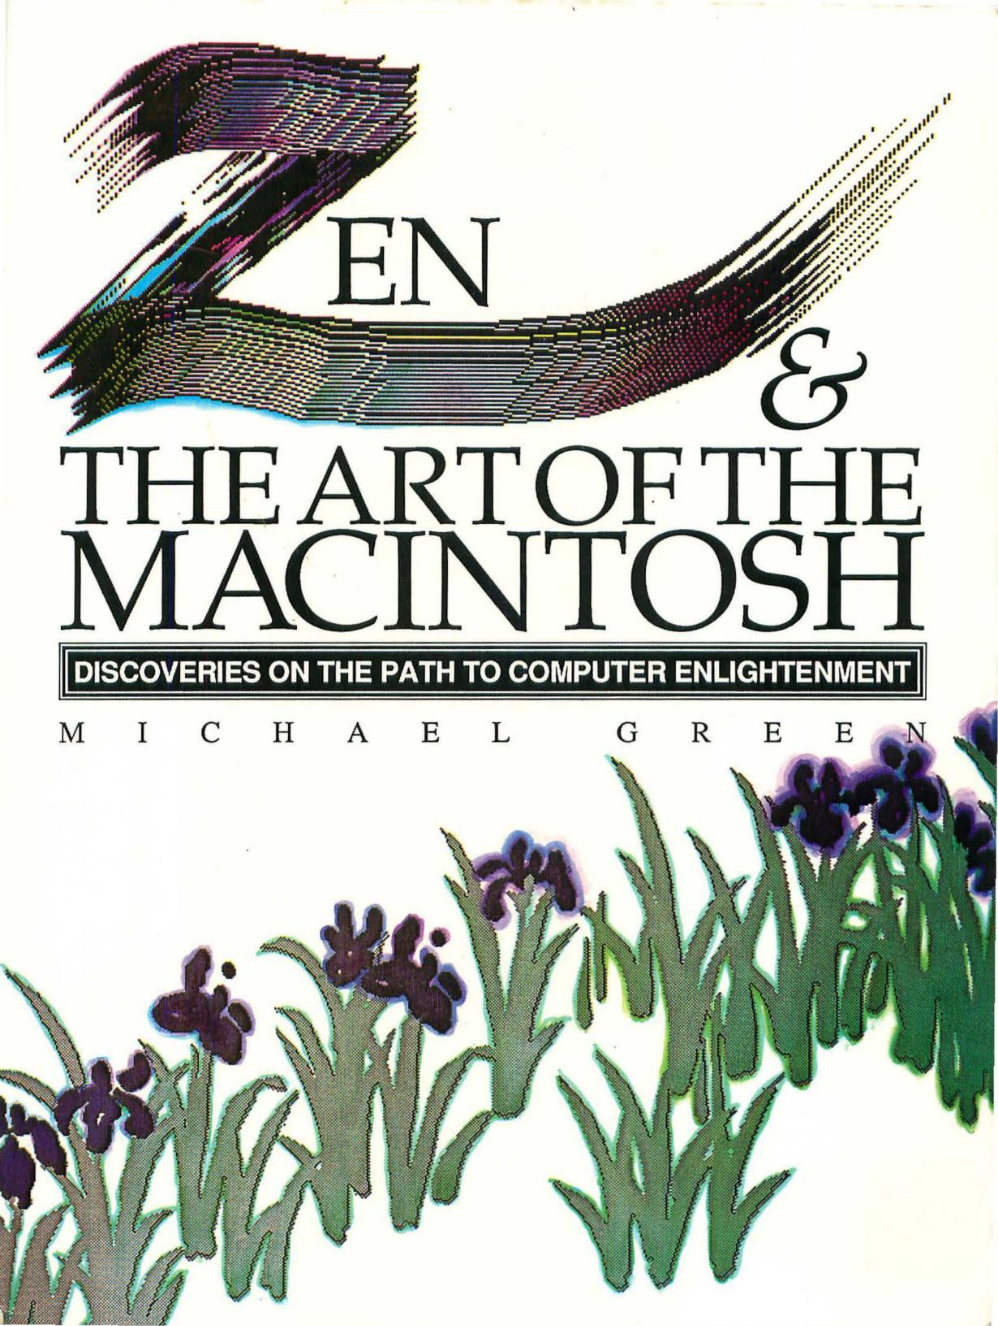 Zen & The Art Of The Macintosh: Discoveries On The Path To Computer Enlightment